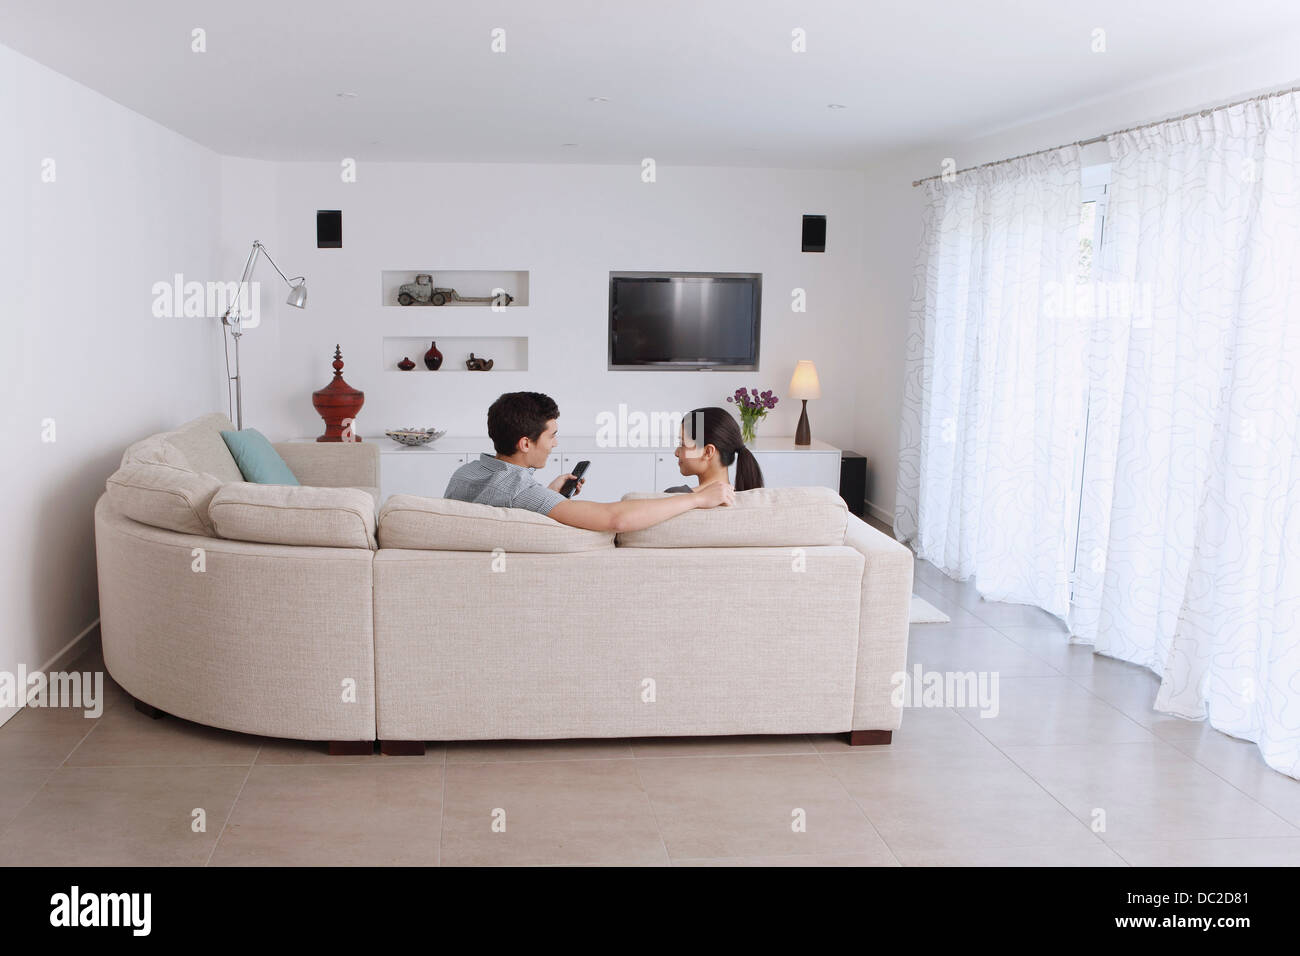 Husband and wife relaxing on corner sofa in living room - Stock Image